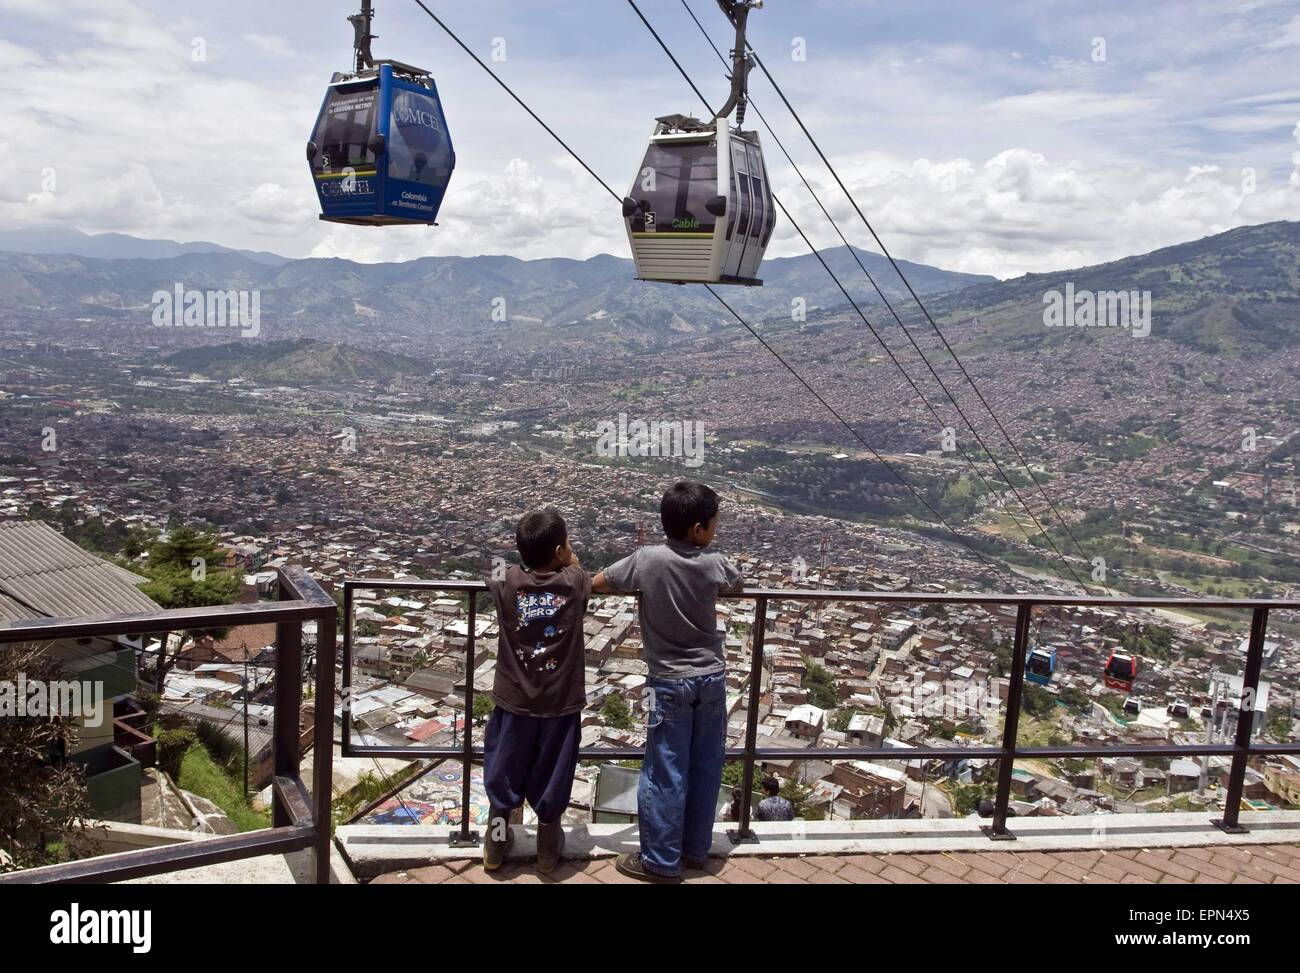 """Beijing, China. 27th Mar, 2009. Image taken on March 27, 2009 shows children watching the """"metrocable"""" in Medellin, Stock Photo"""